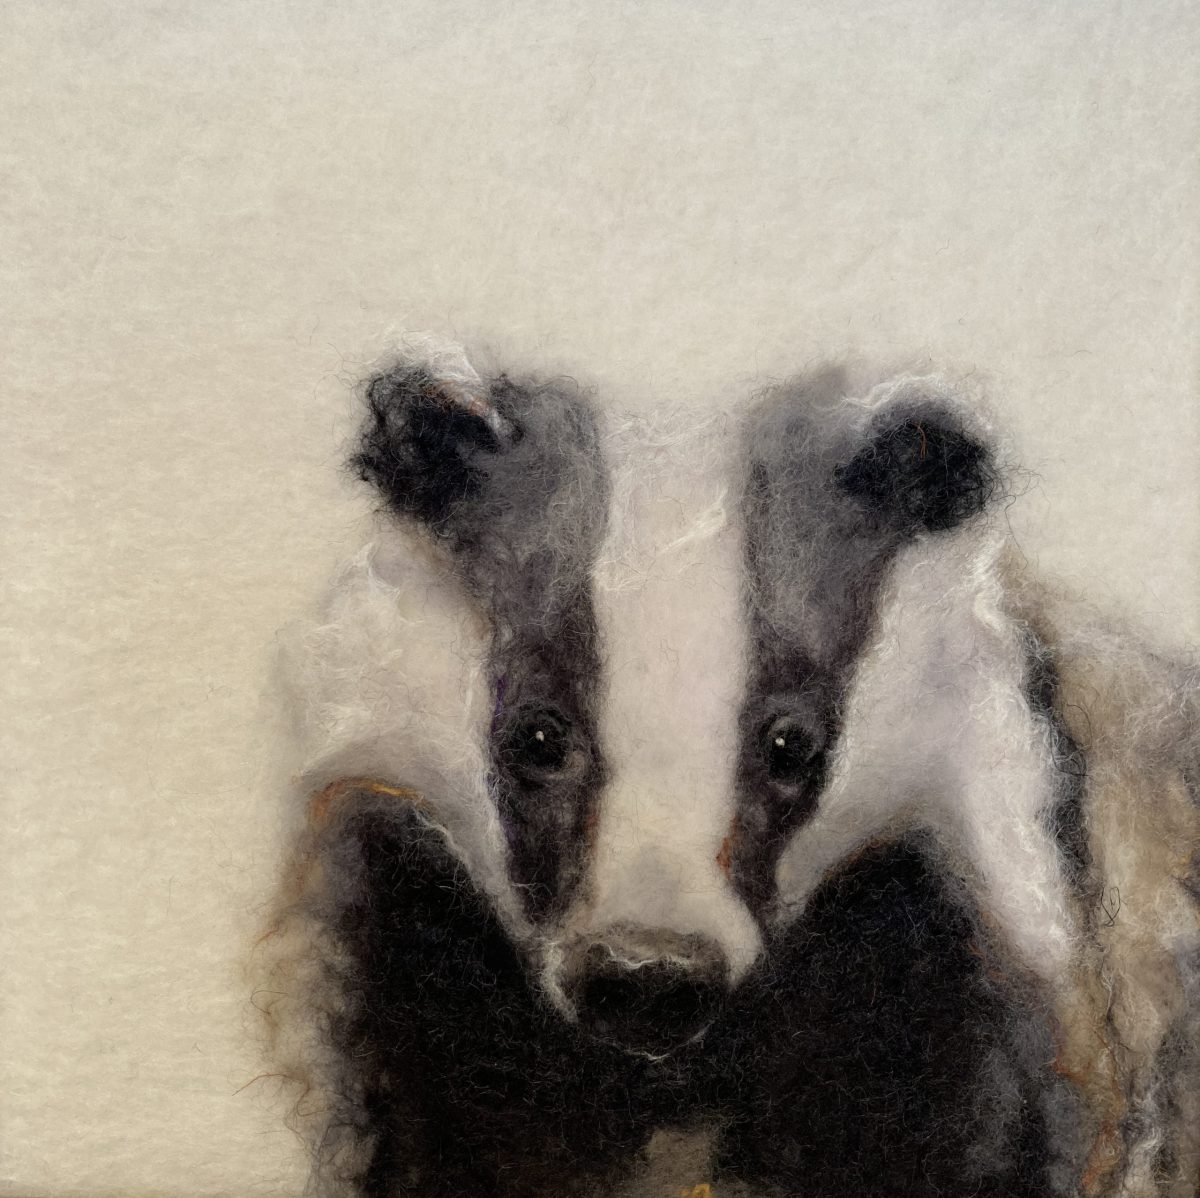 felt picture of a badger